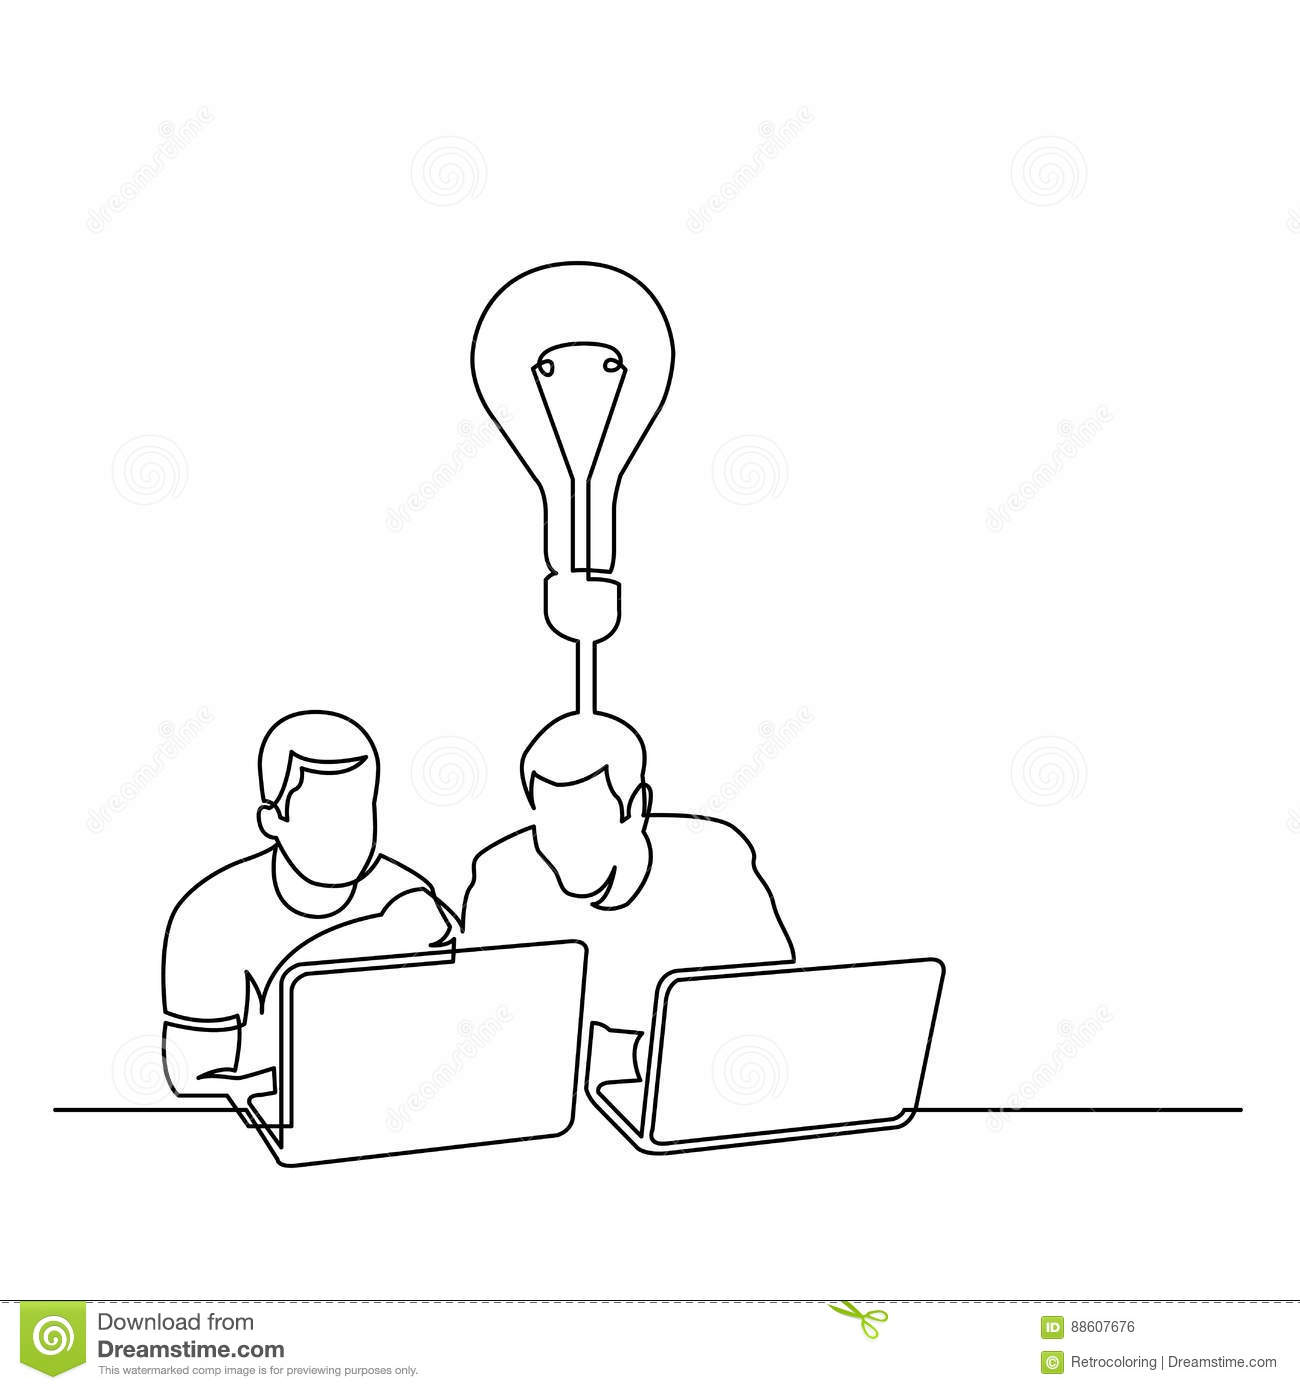 Line Drawing Editor : Continuous line drawing of two men sitting with laptop